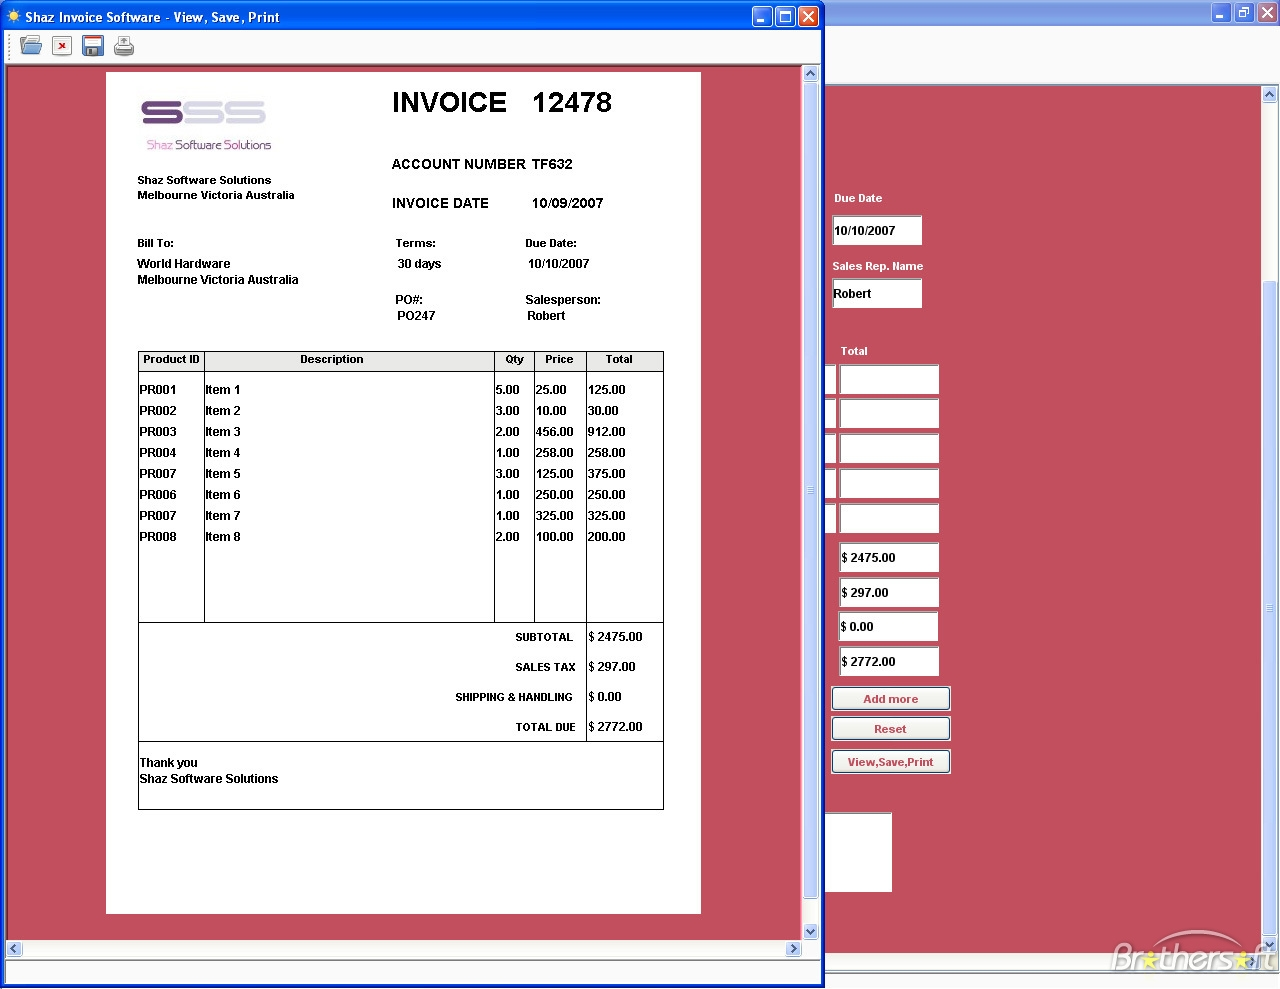 download free shaz invoice software shaz invoice software 100 invoice free software download